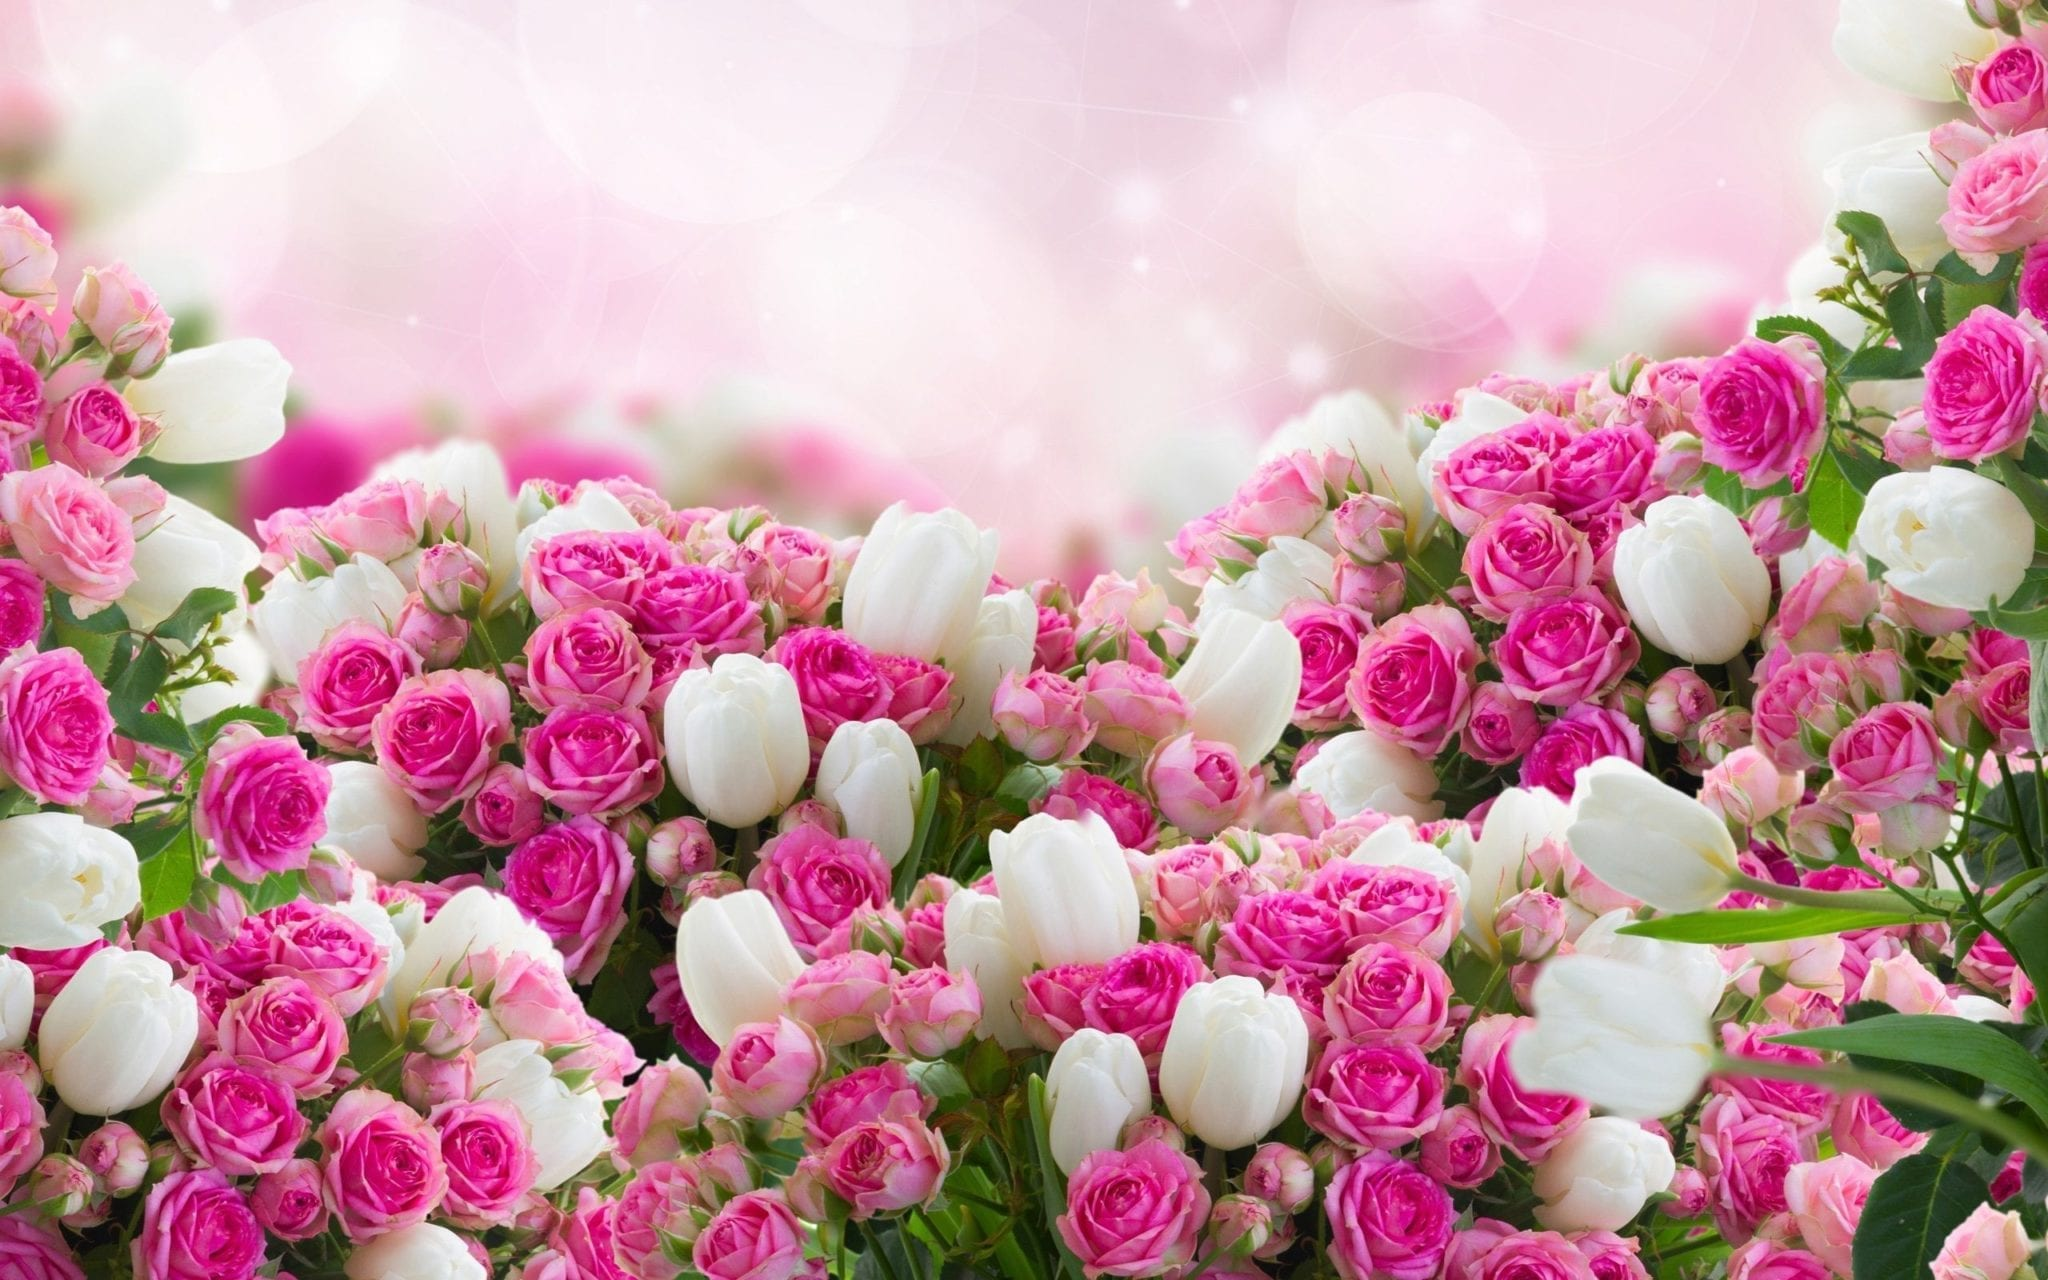 Red And White Flowers Flower Hd Wallpaper 2560x1600 Fiesta Flowers